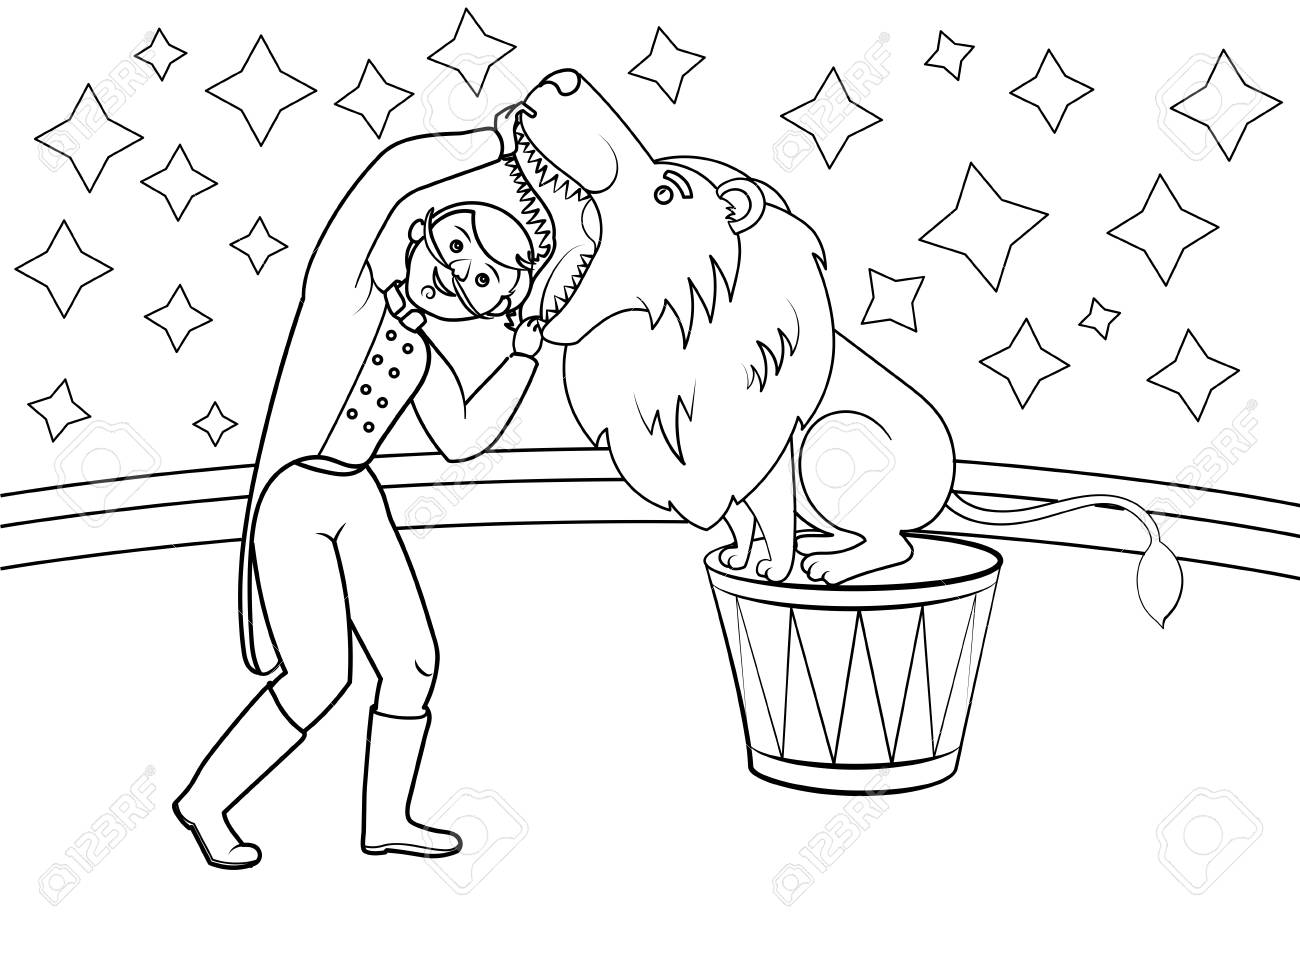 1300x975 Circus Animal Trainer Puts His Head In Lion Mouth. Coloring Book